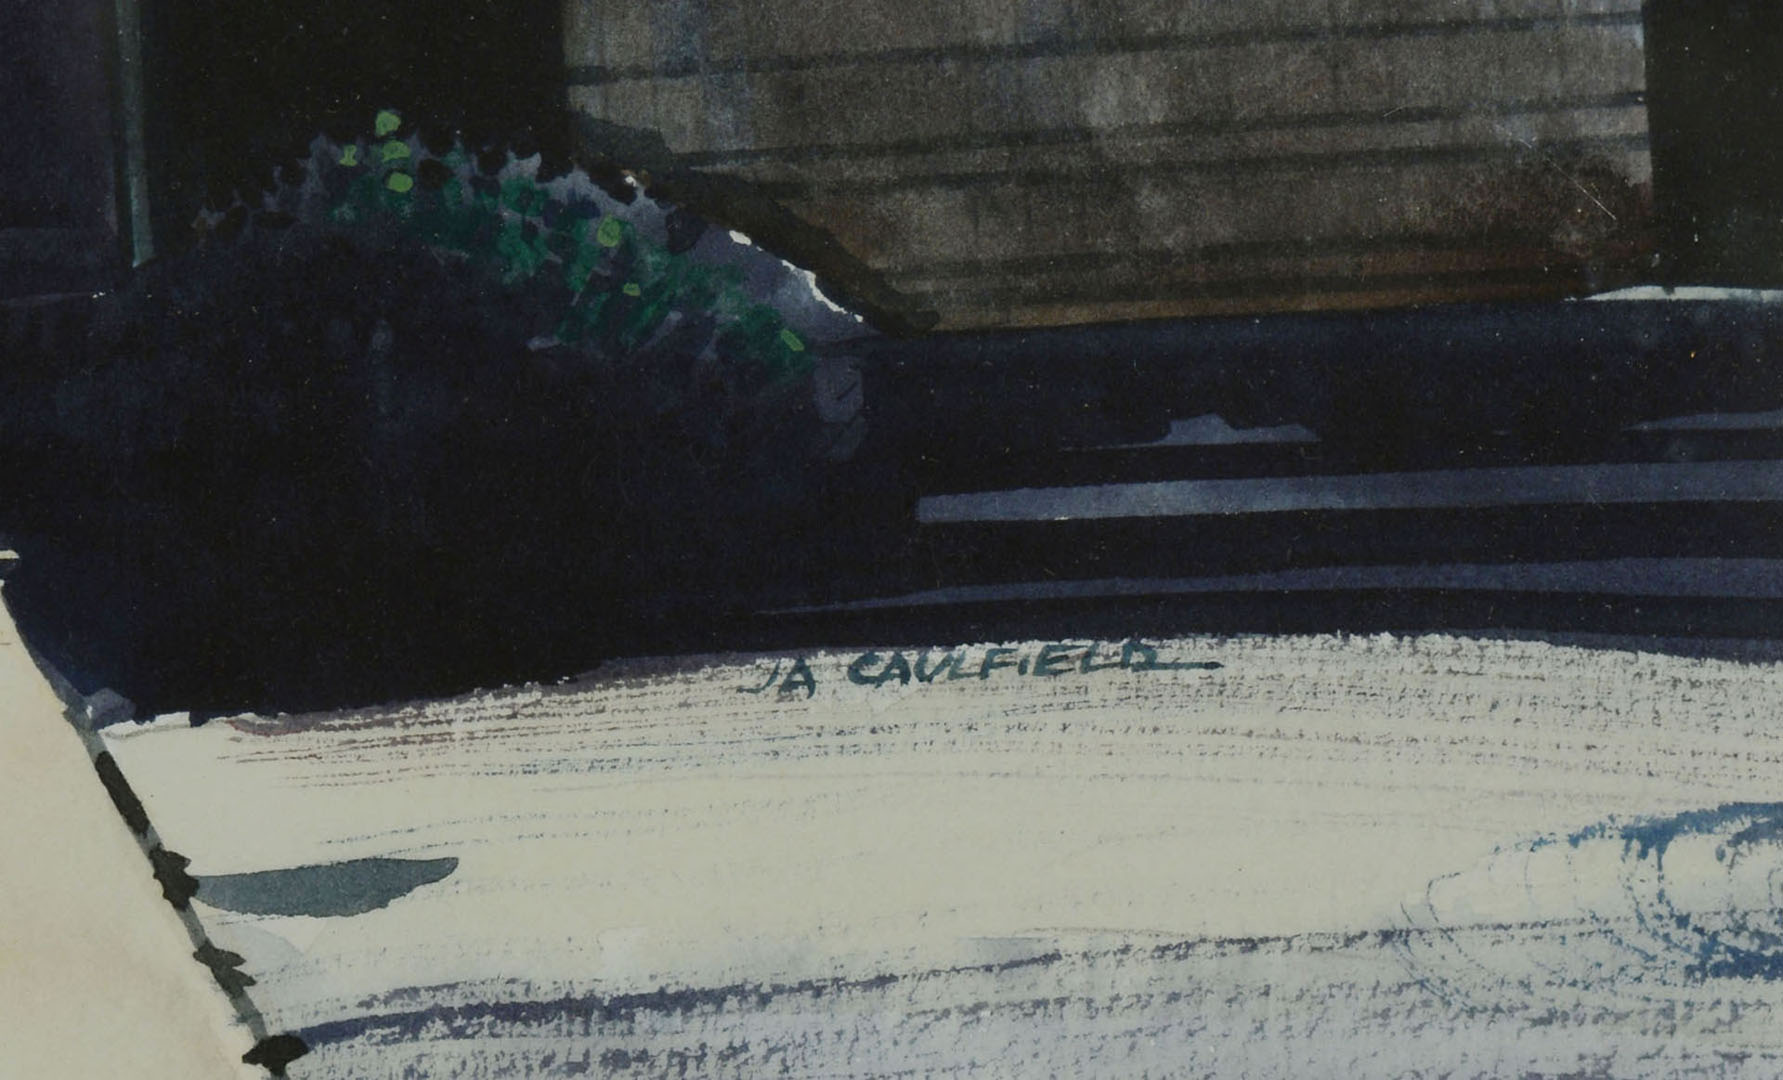 Lot 2872260: 2 James Caulfield watercolor paintings – Cafe and